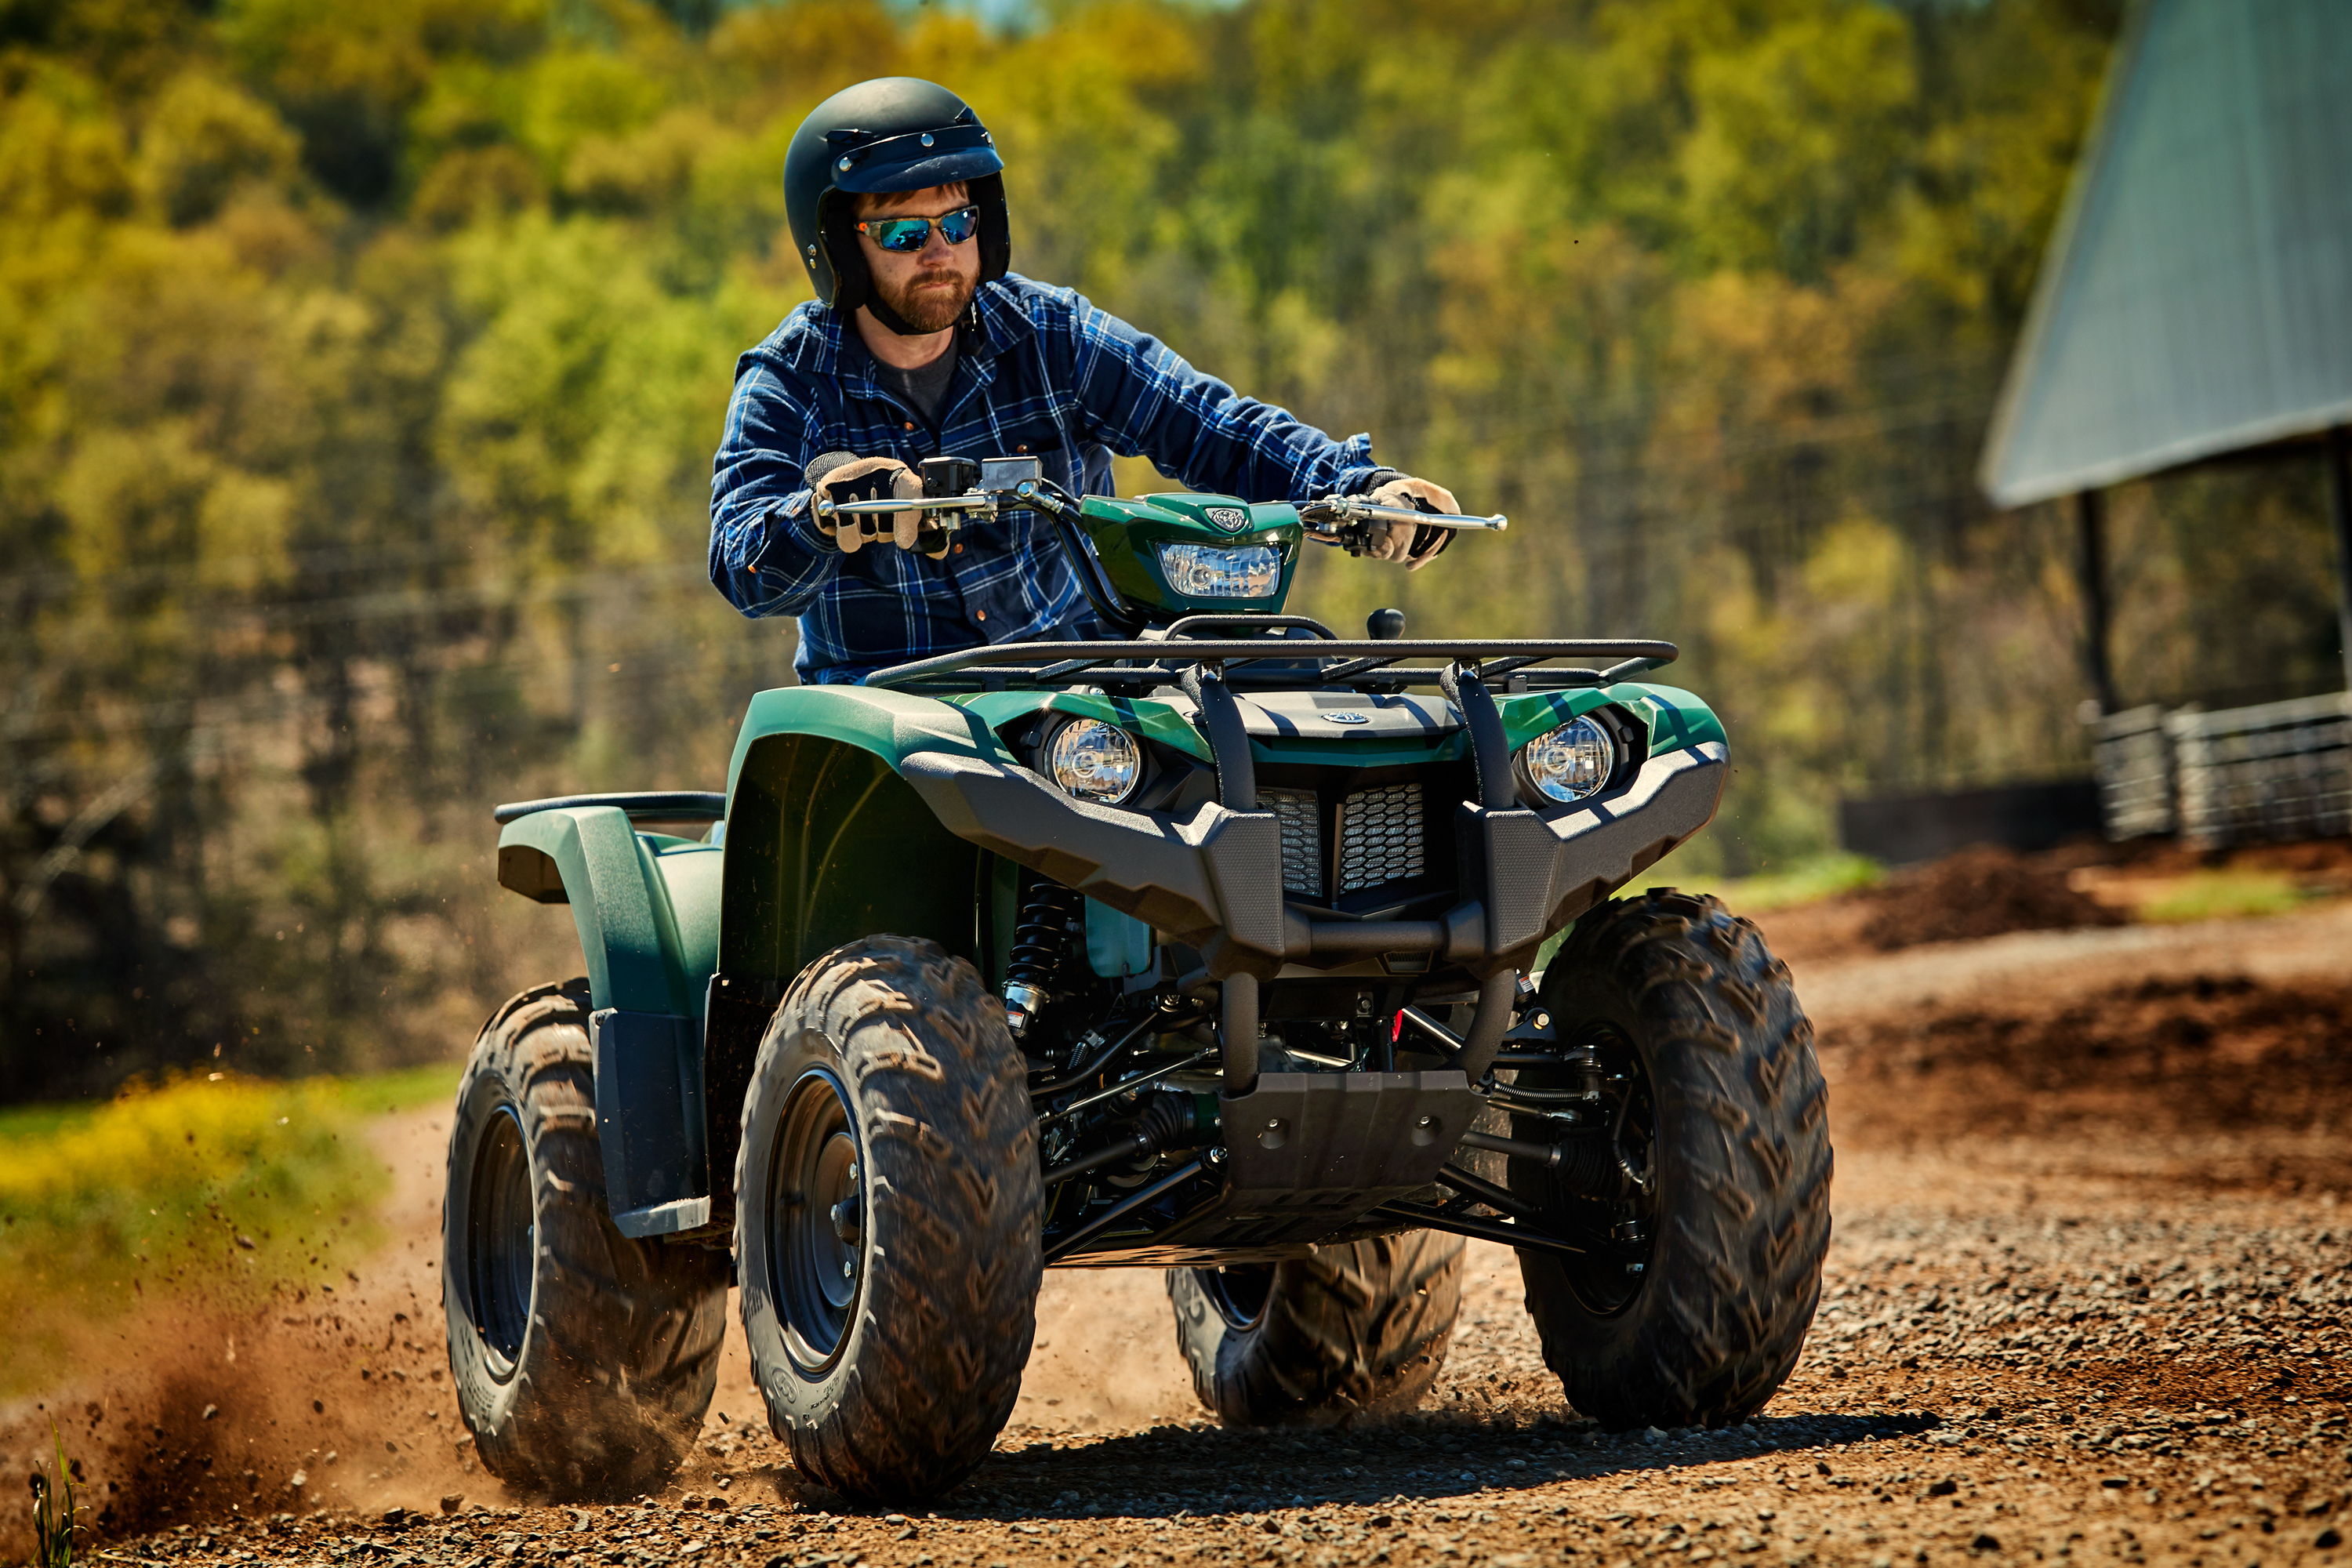 Man riding on a green Yamaha ATV with sunglasses